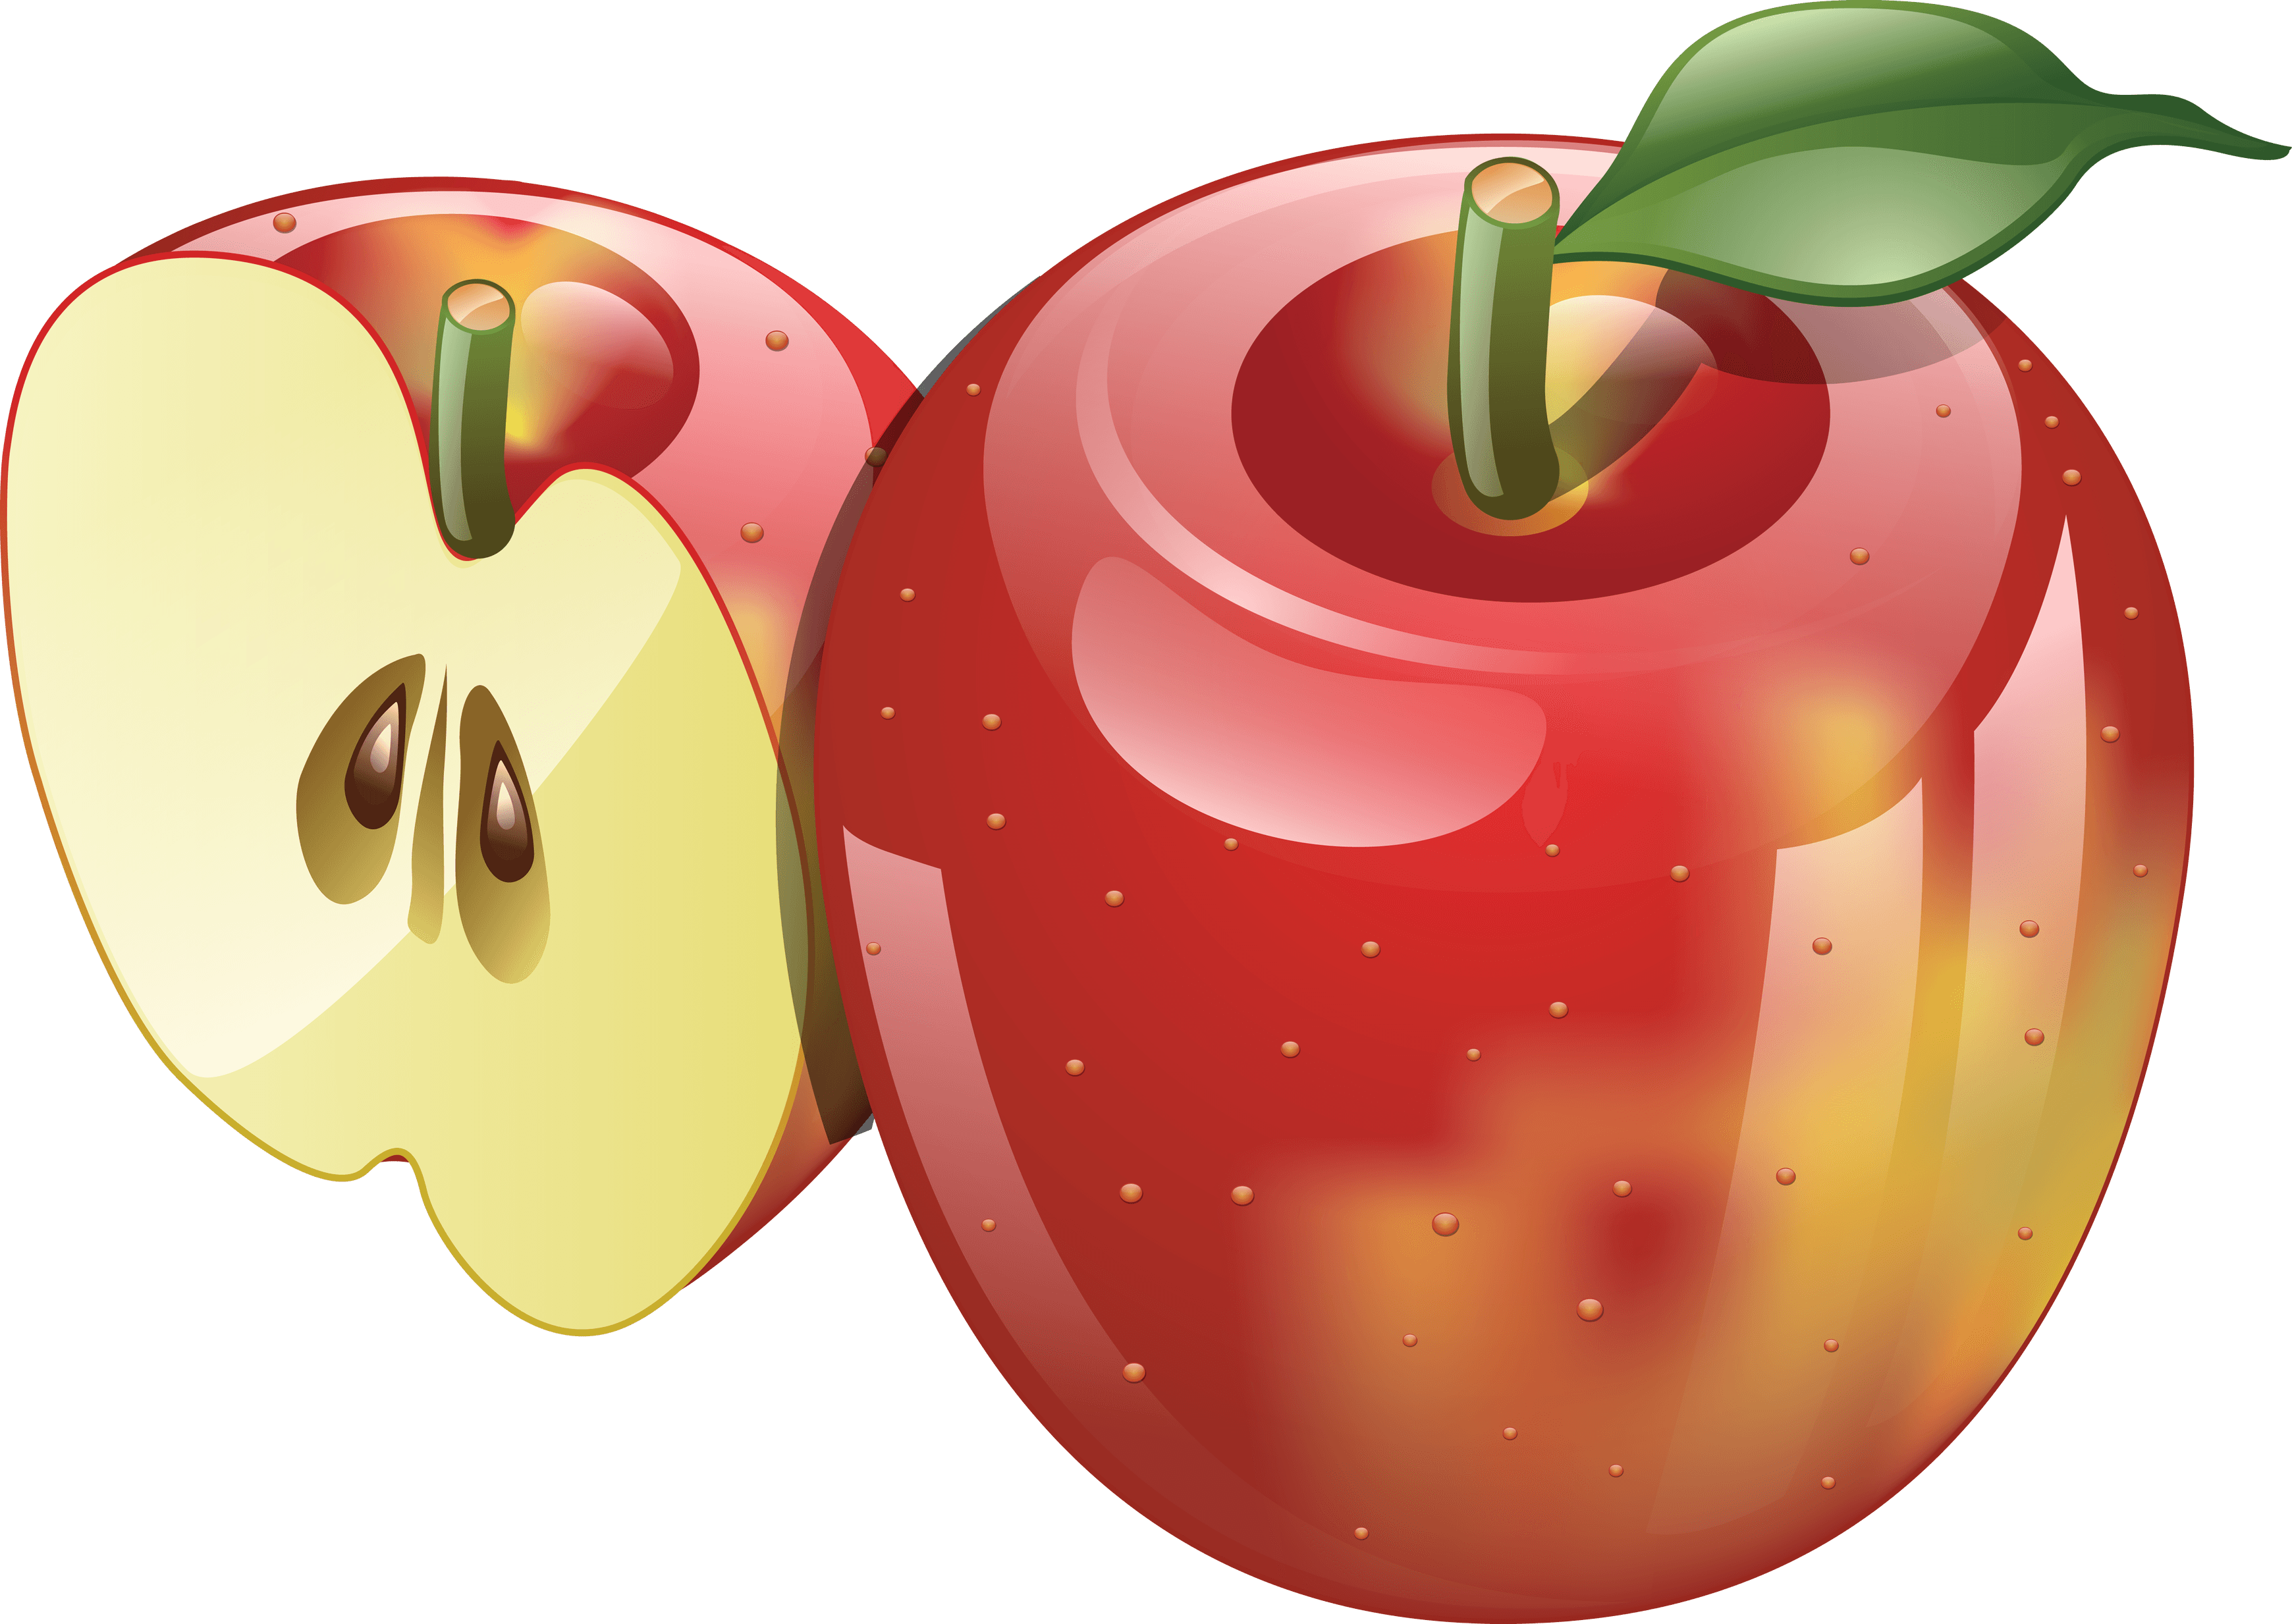 45 red apple png image